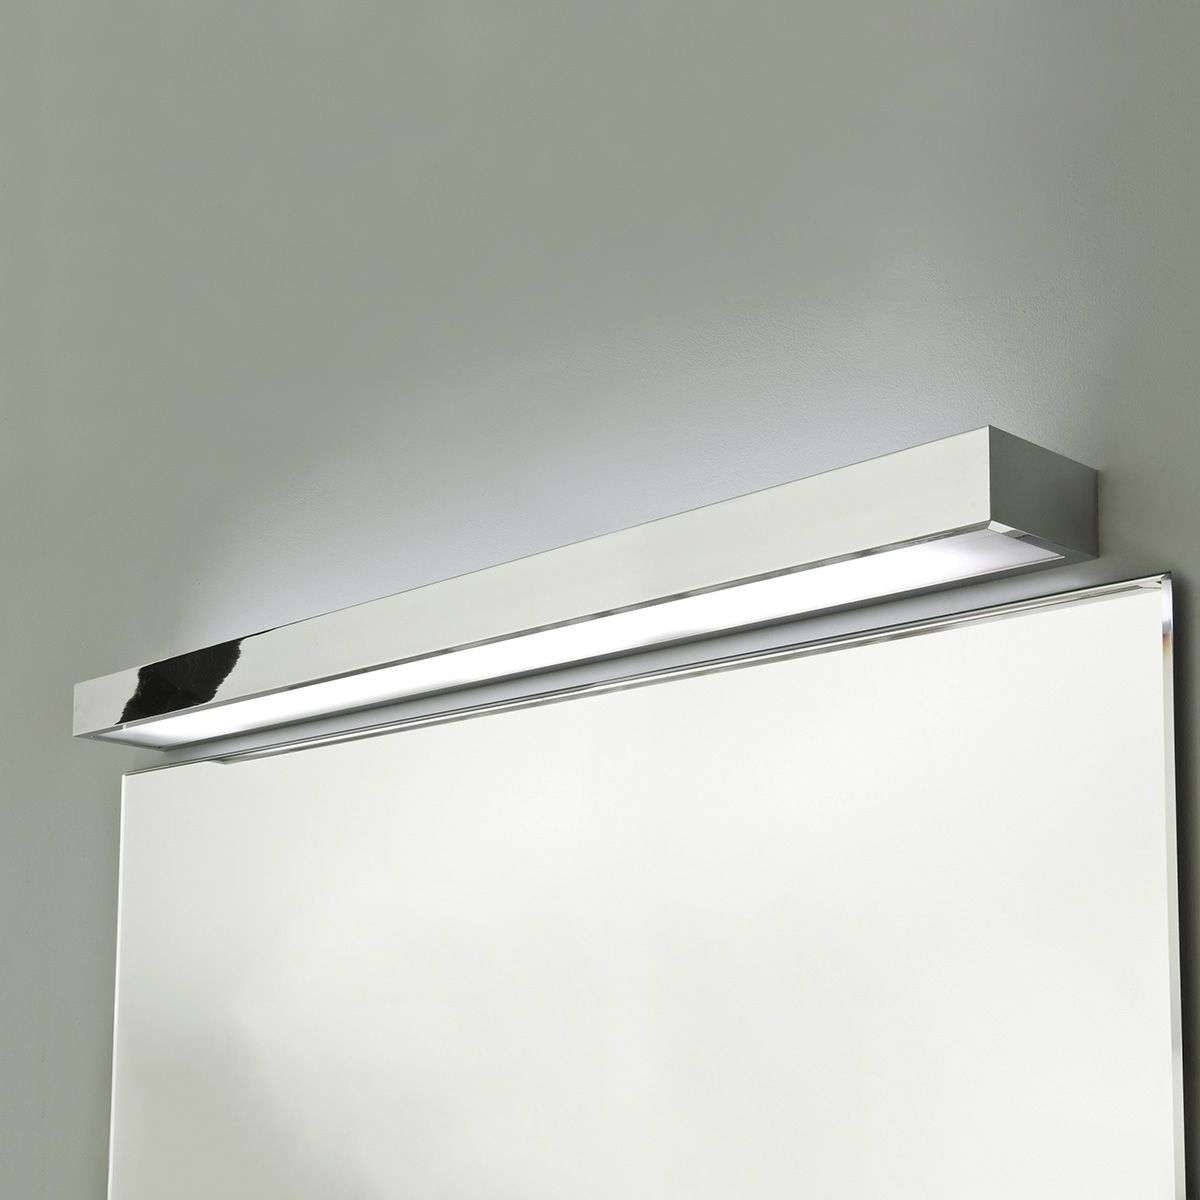 Tallin wall light length 90 cm-1020030-32